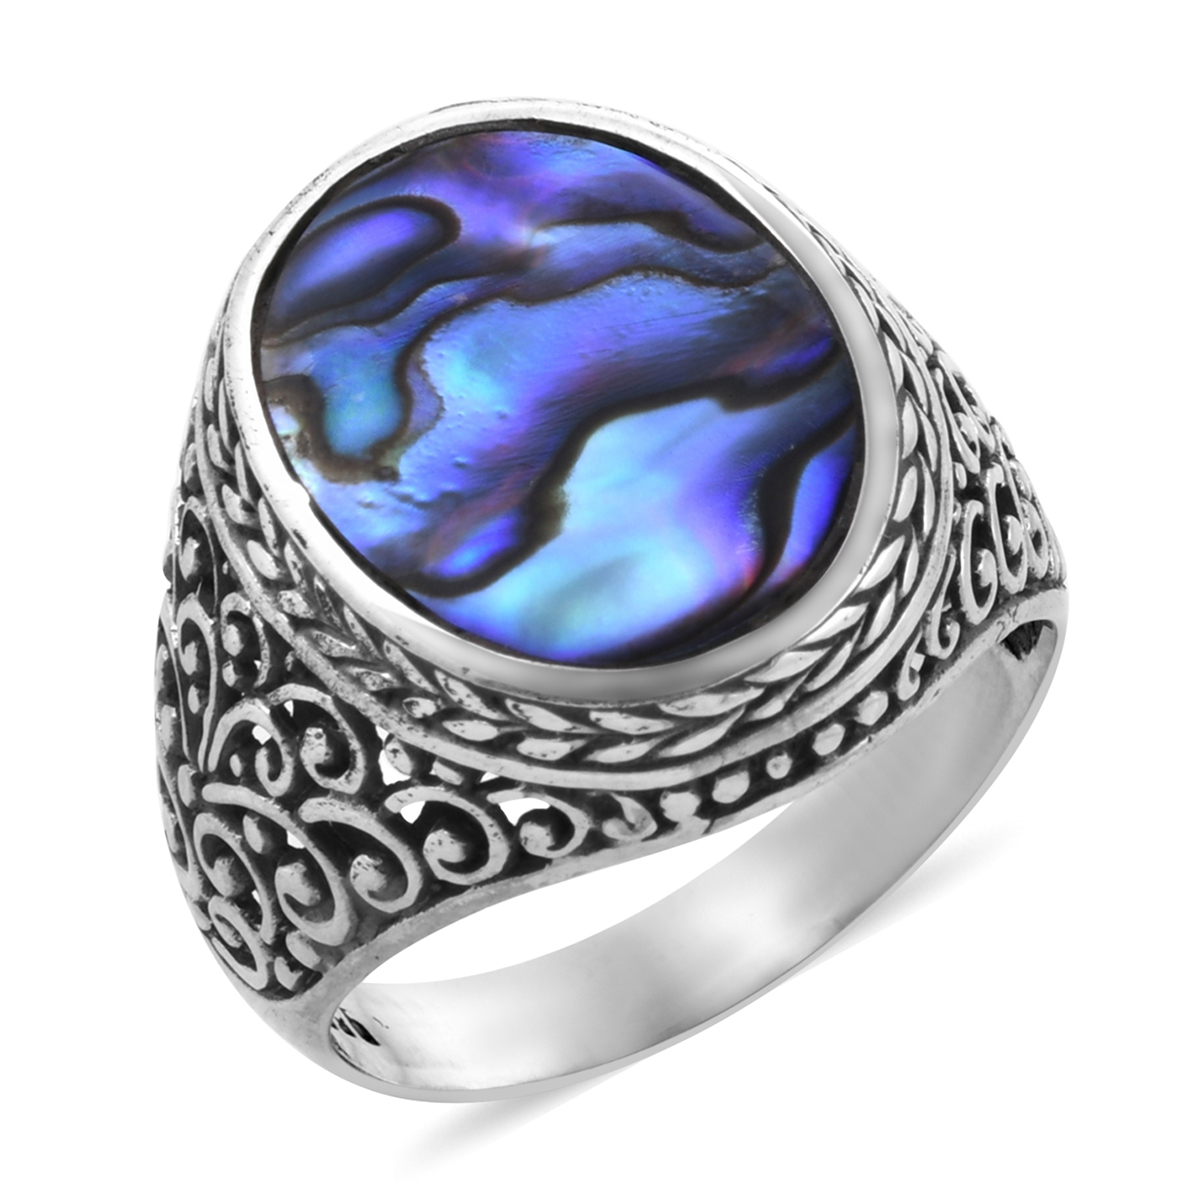 Bali Legacy Abalone Shell Ring in Sterling Silver (Size 9.0)